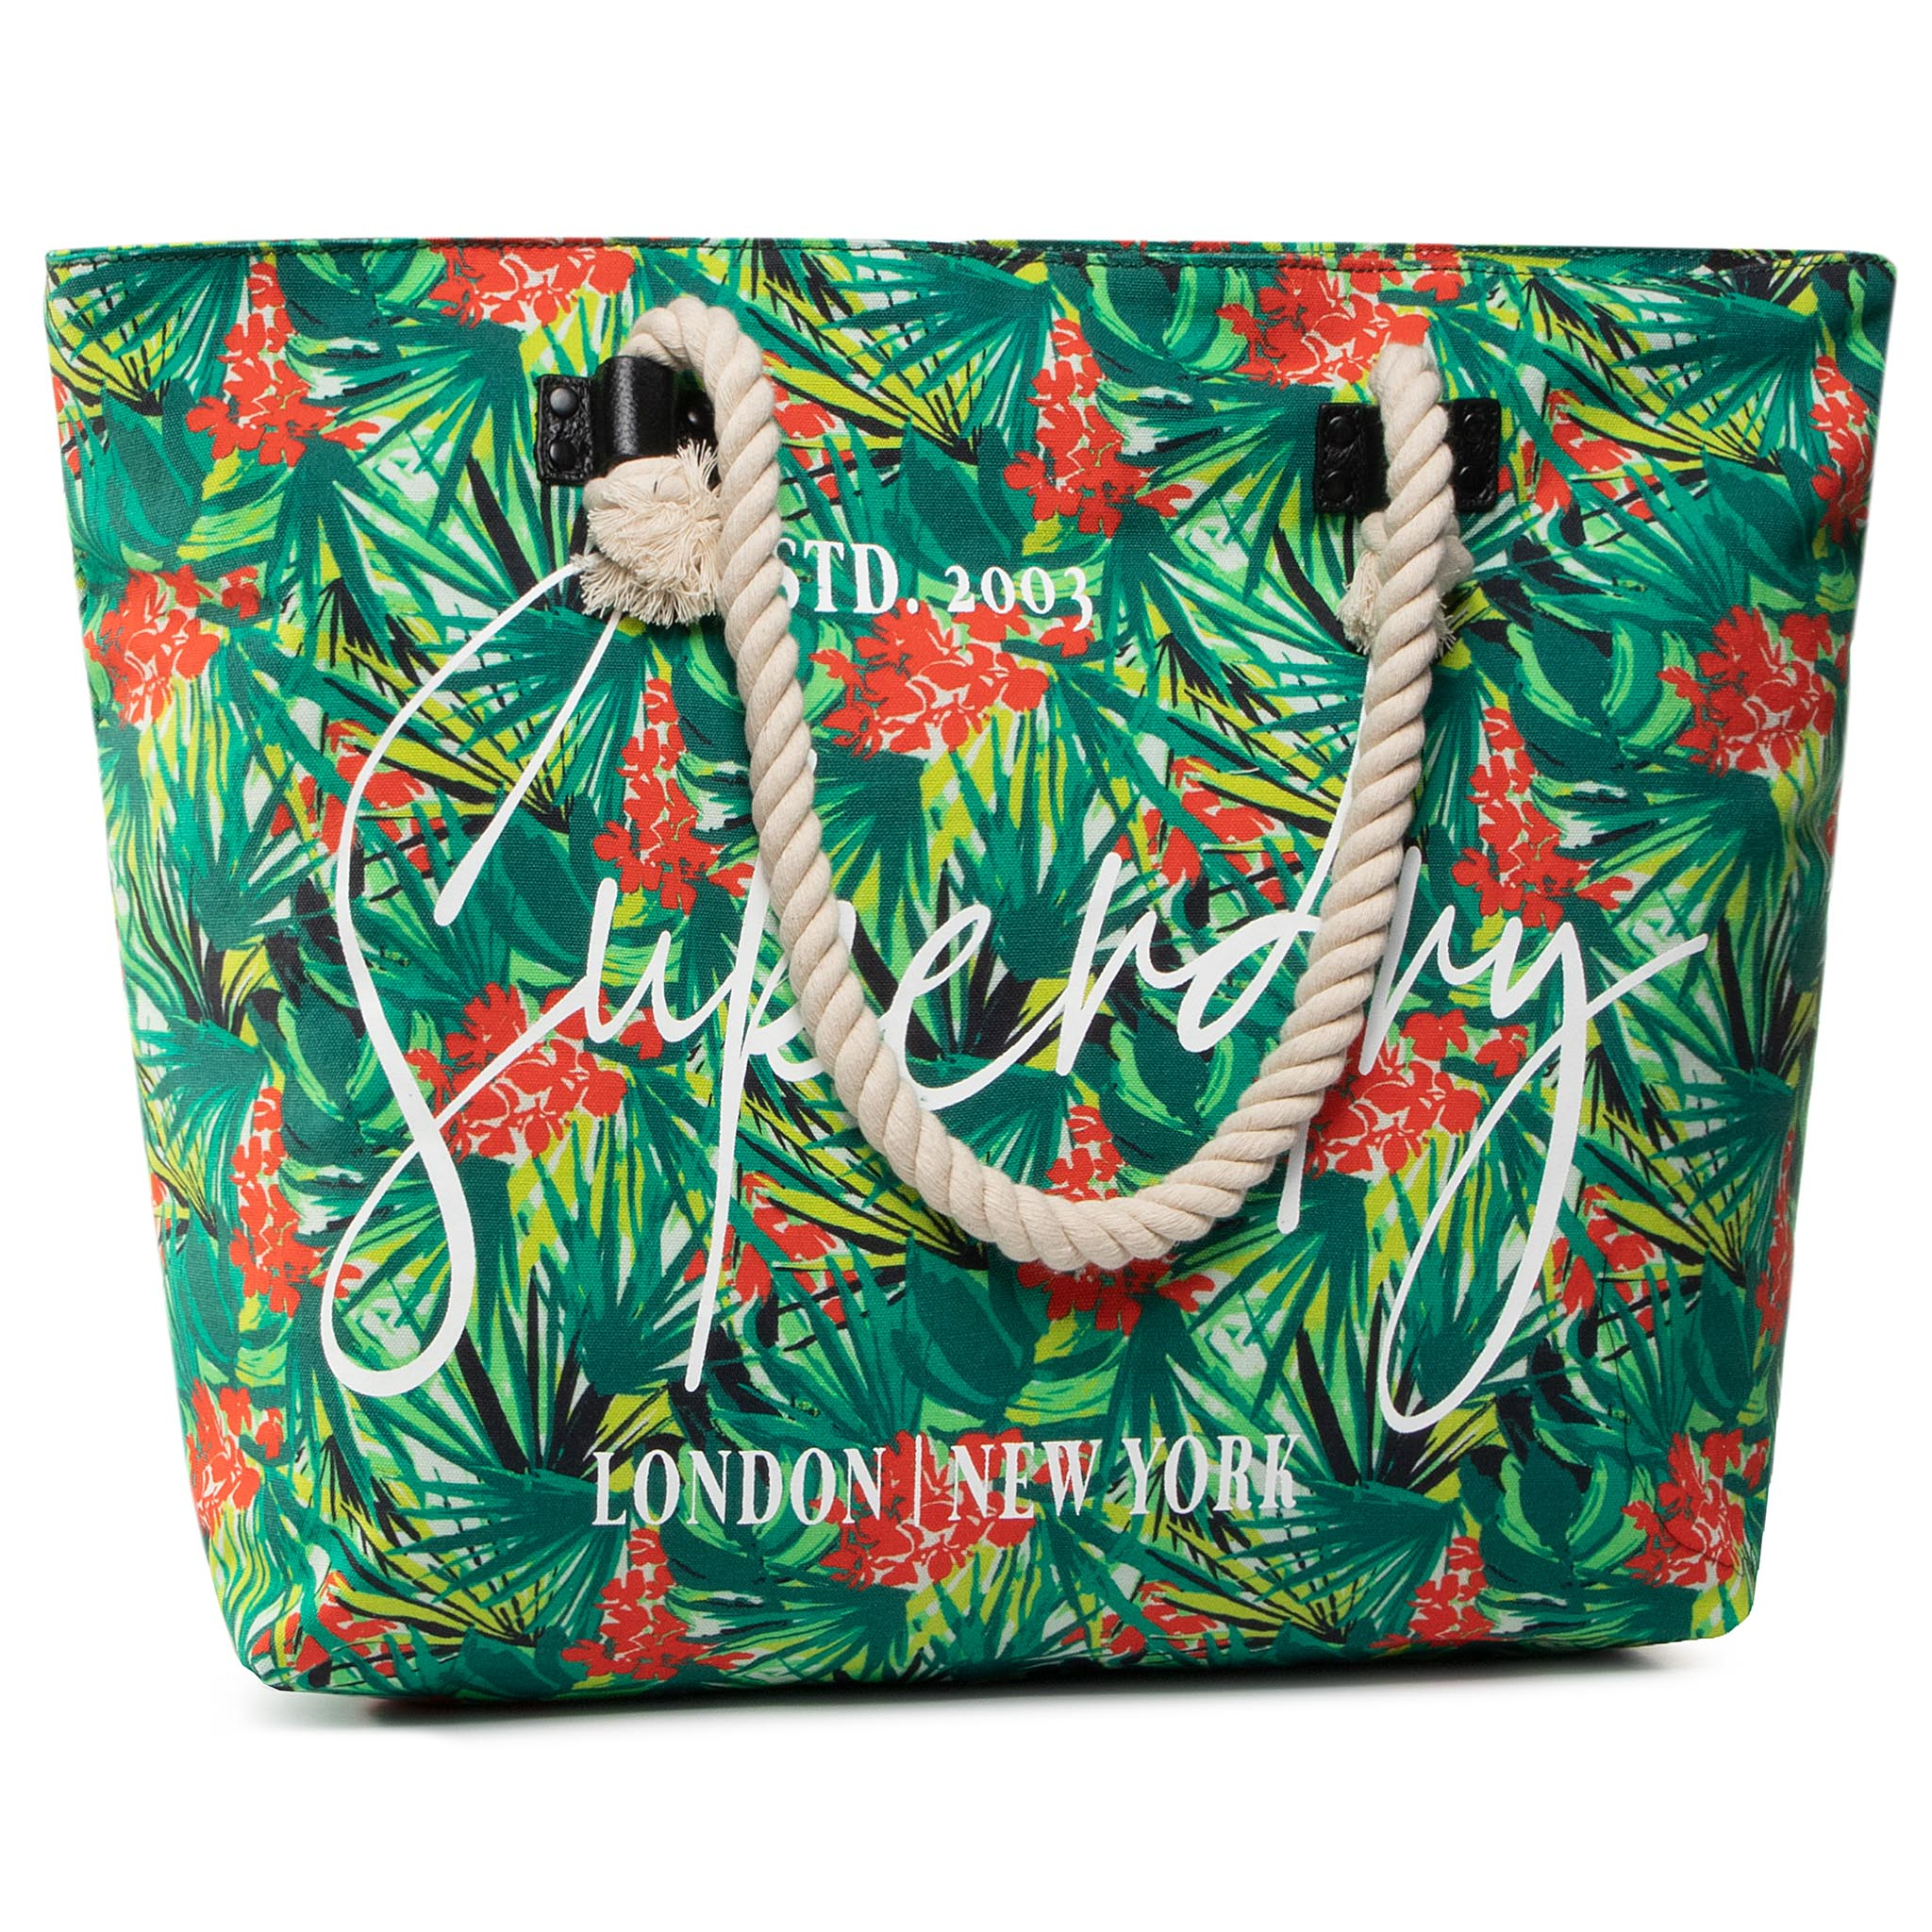 Geantă SUPERDRY - W9110022A Green Tropical 0UW